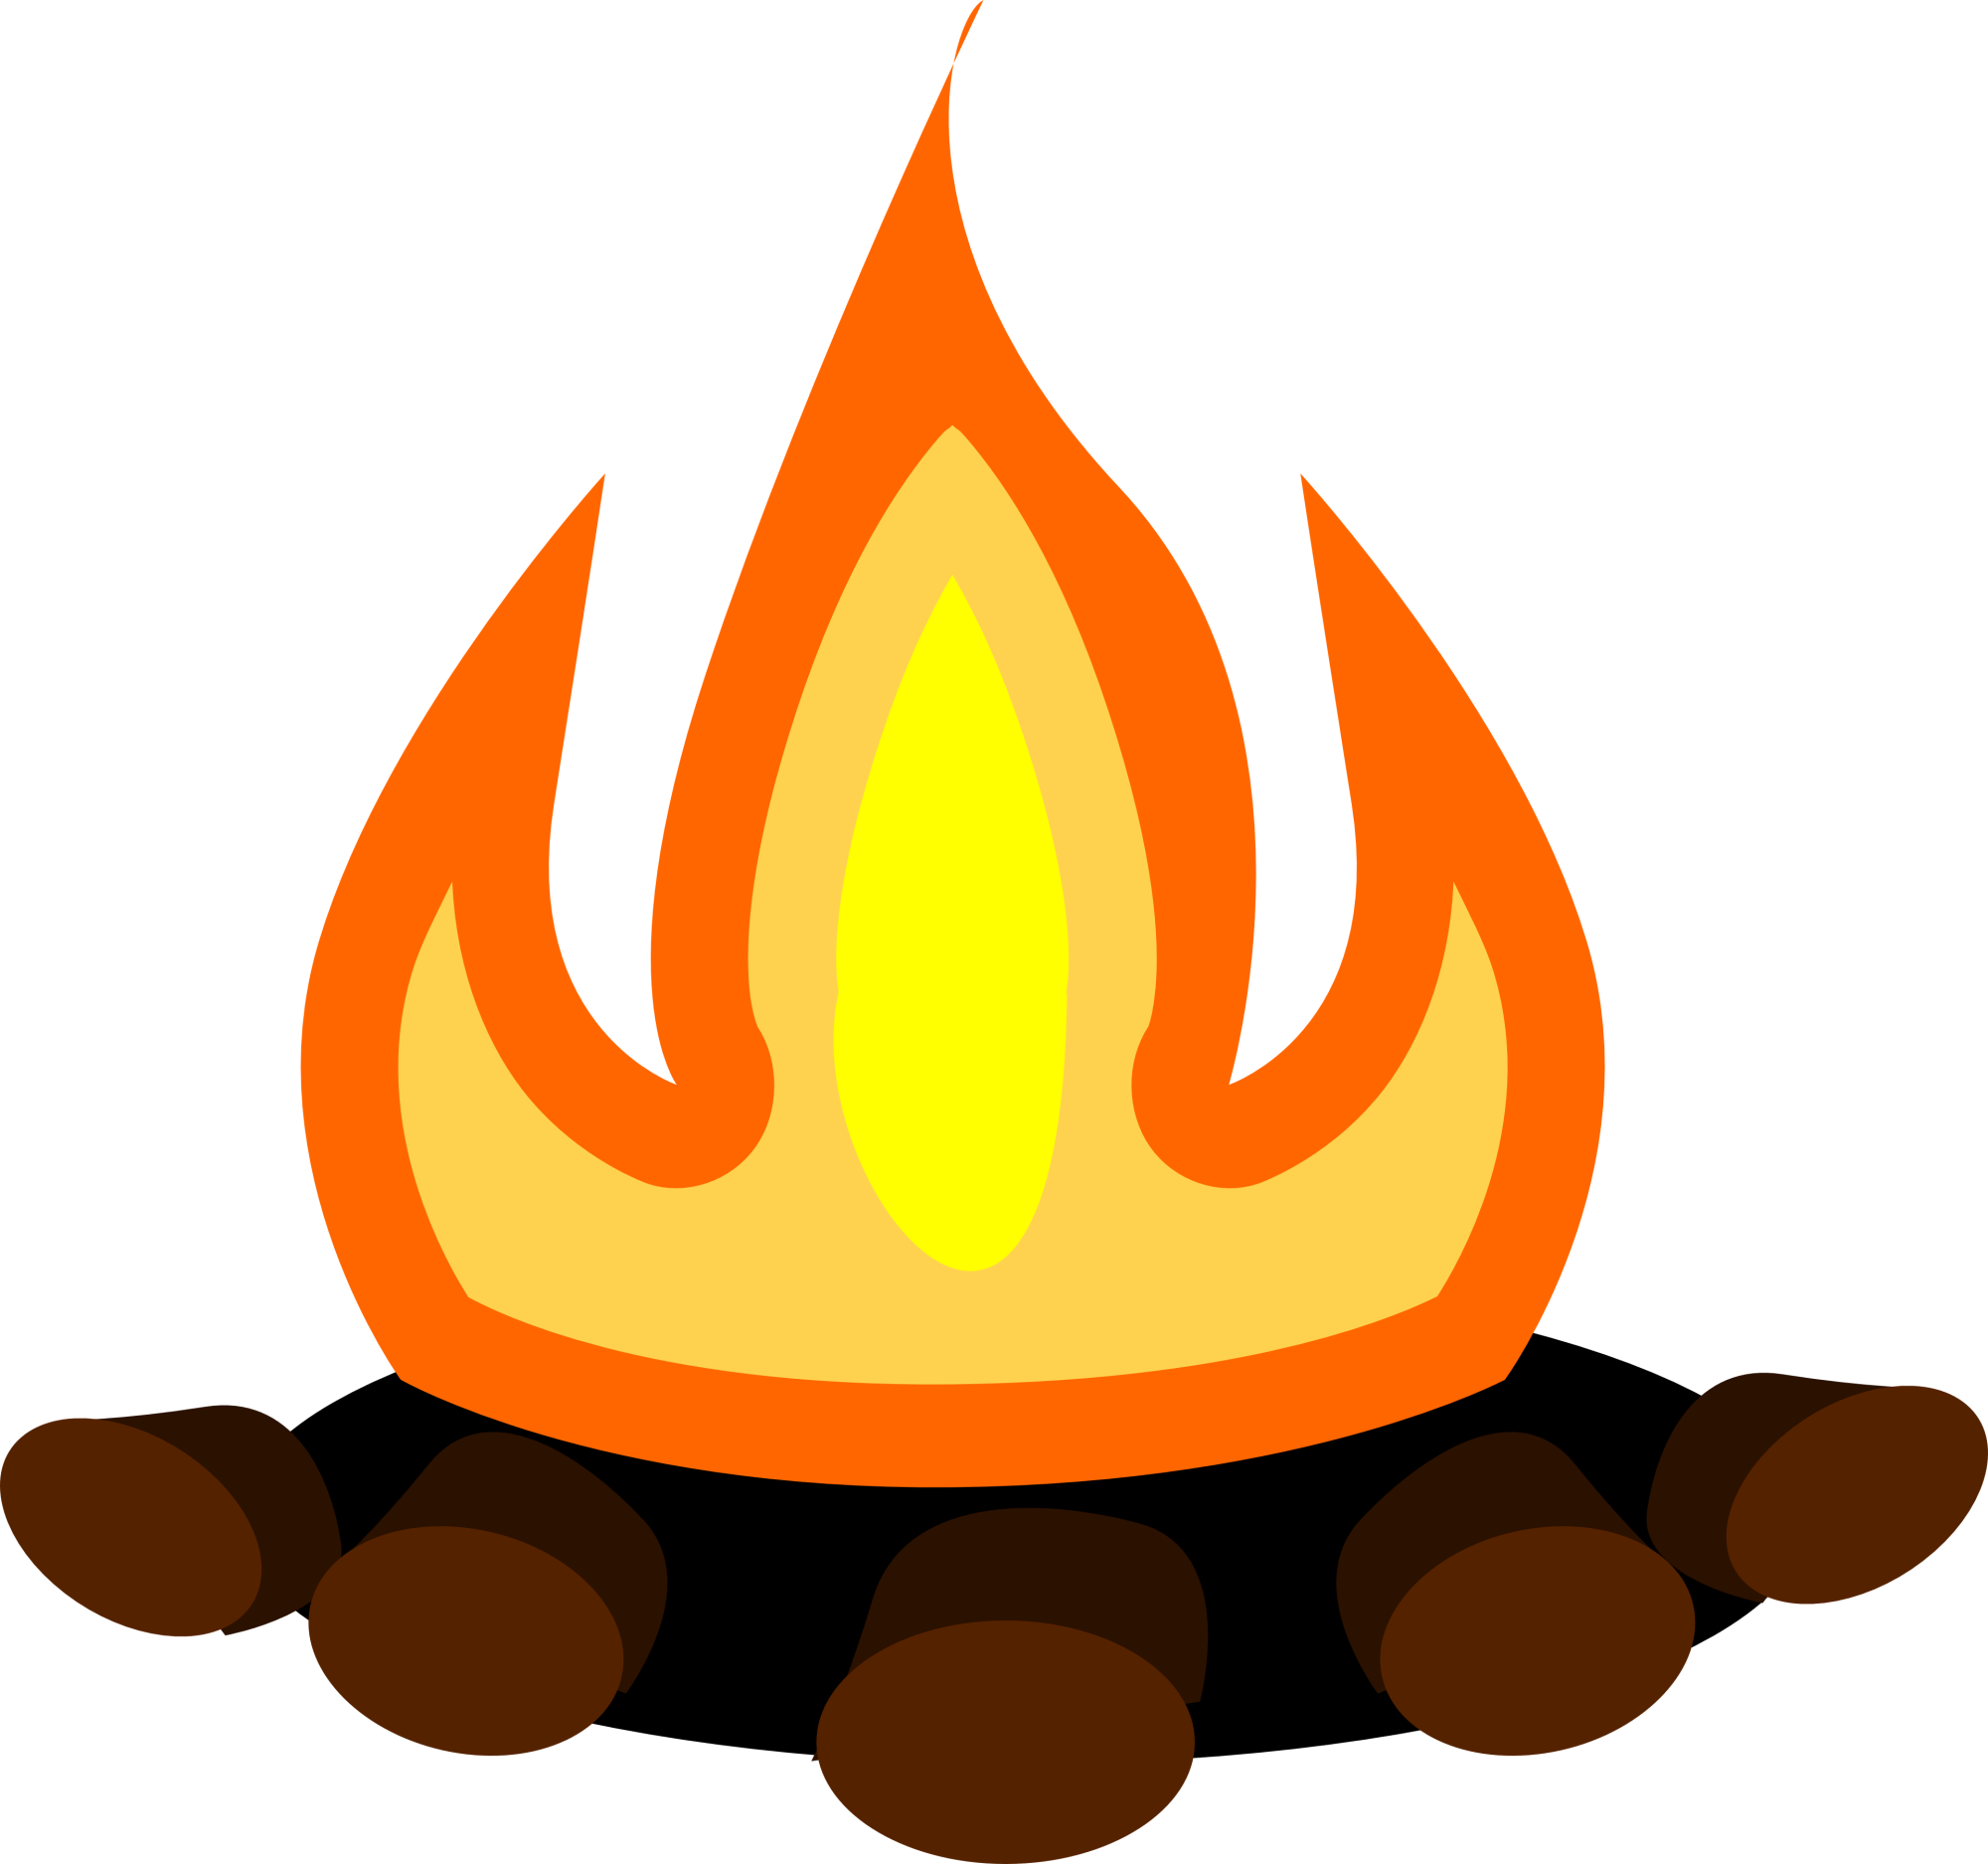 hight resolution of bonfire png images free download